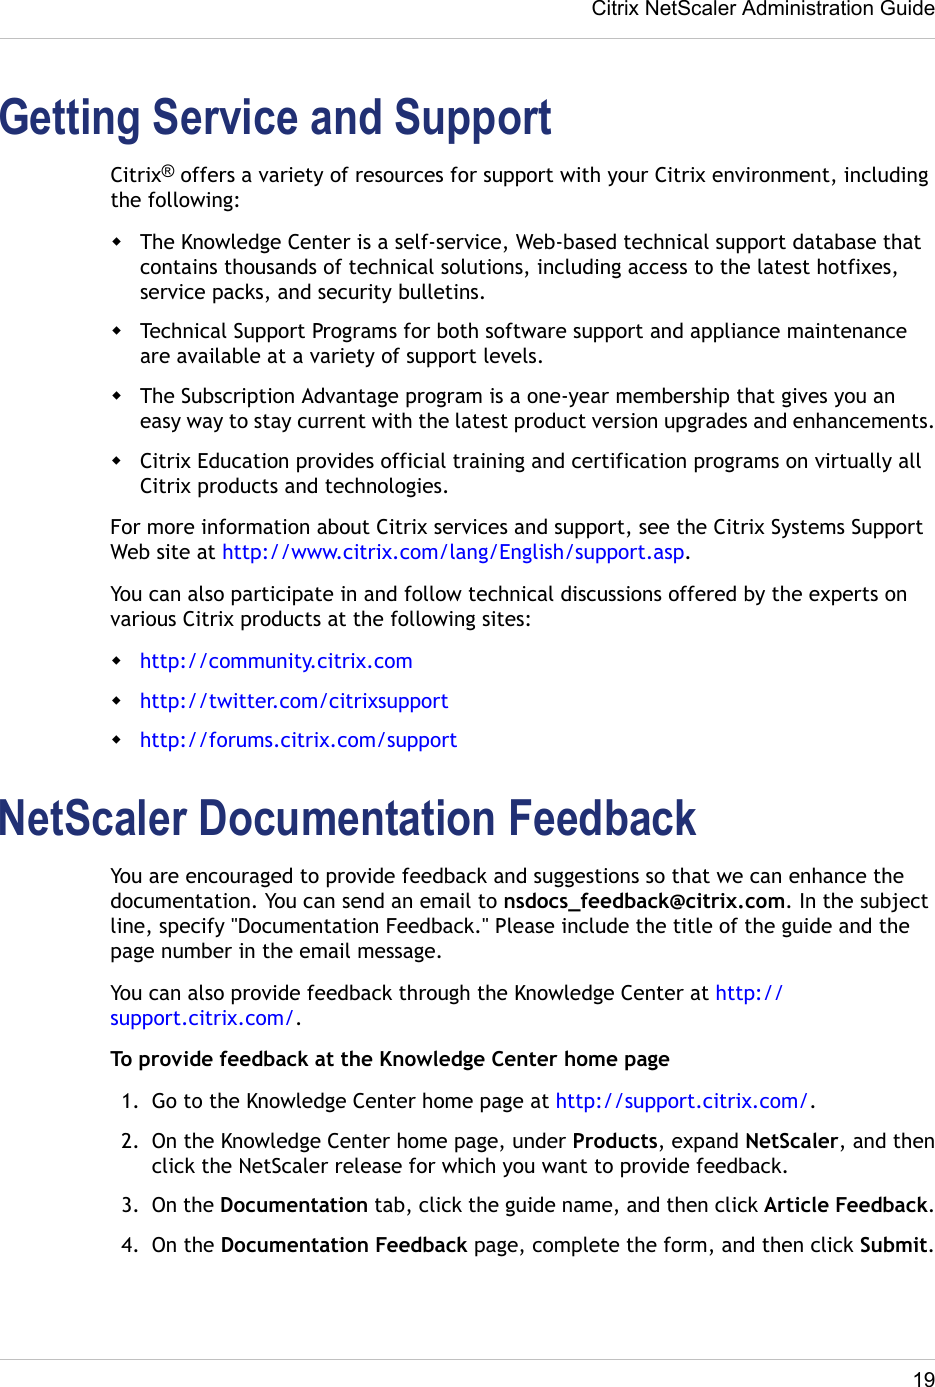 Citrix Systems Network Router Netscaler 9 3 Users Manual